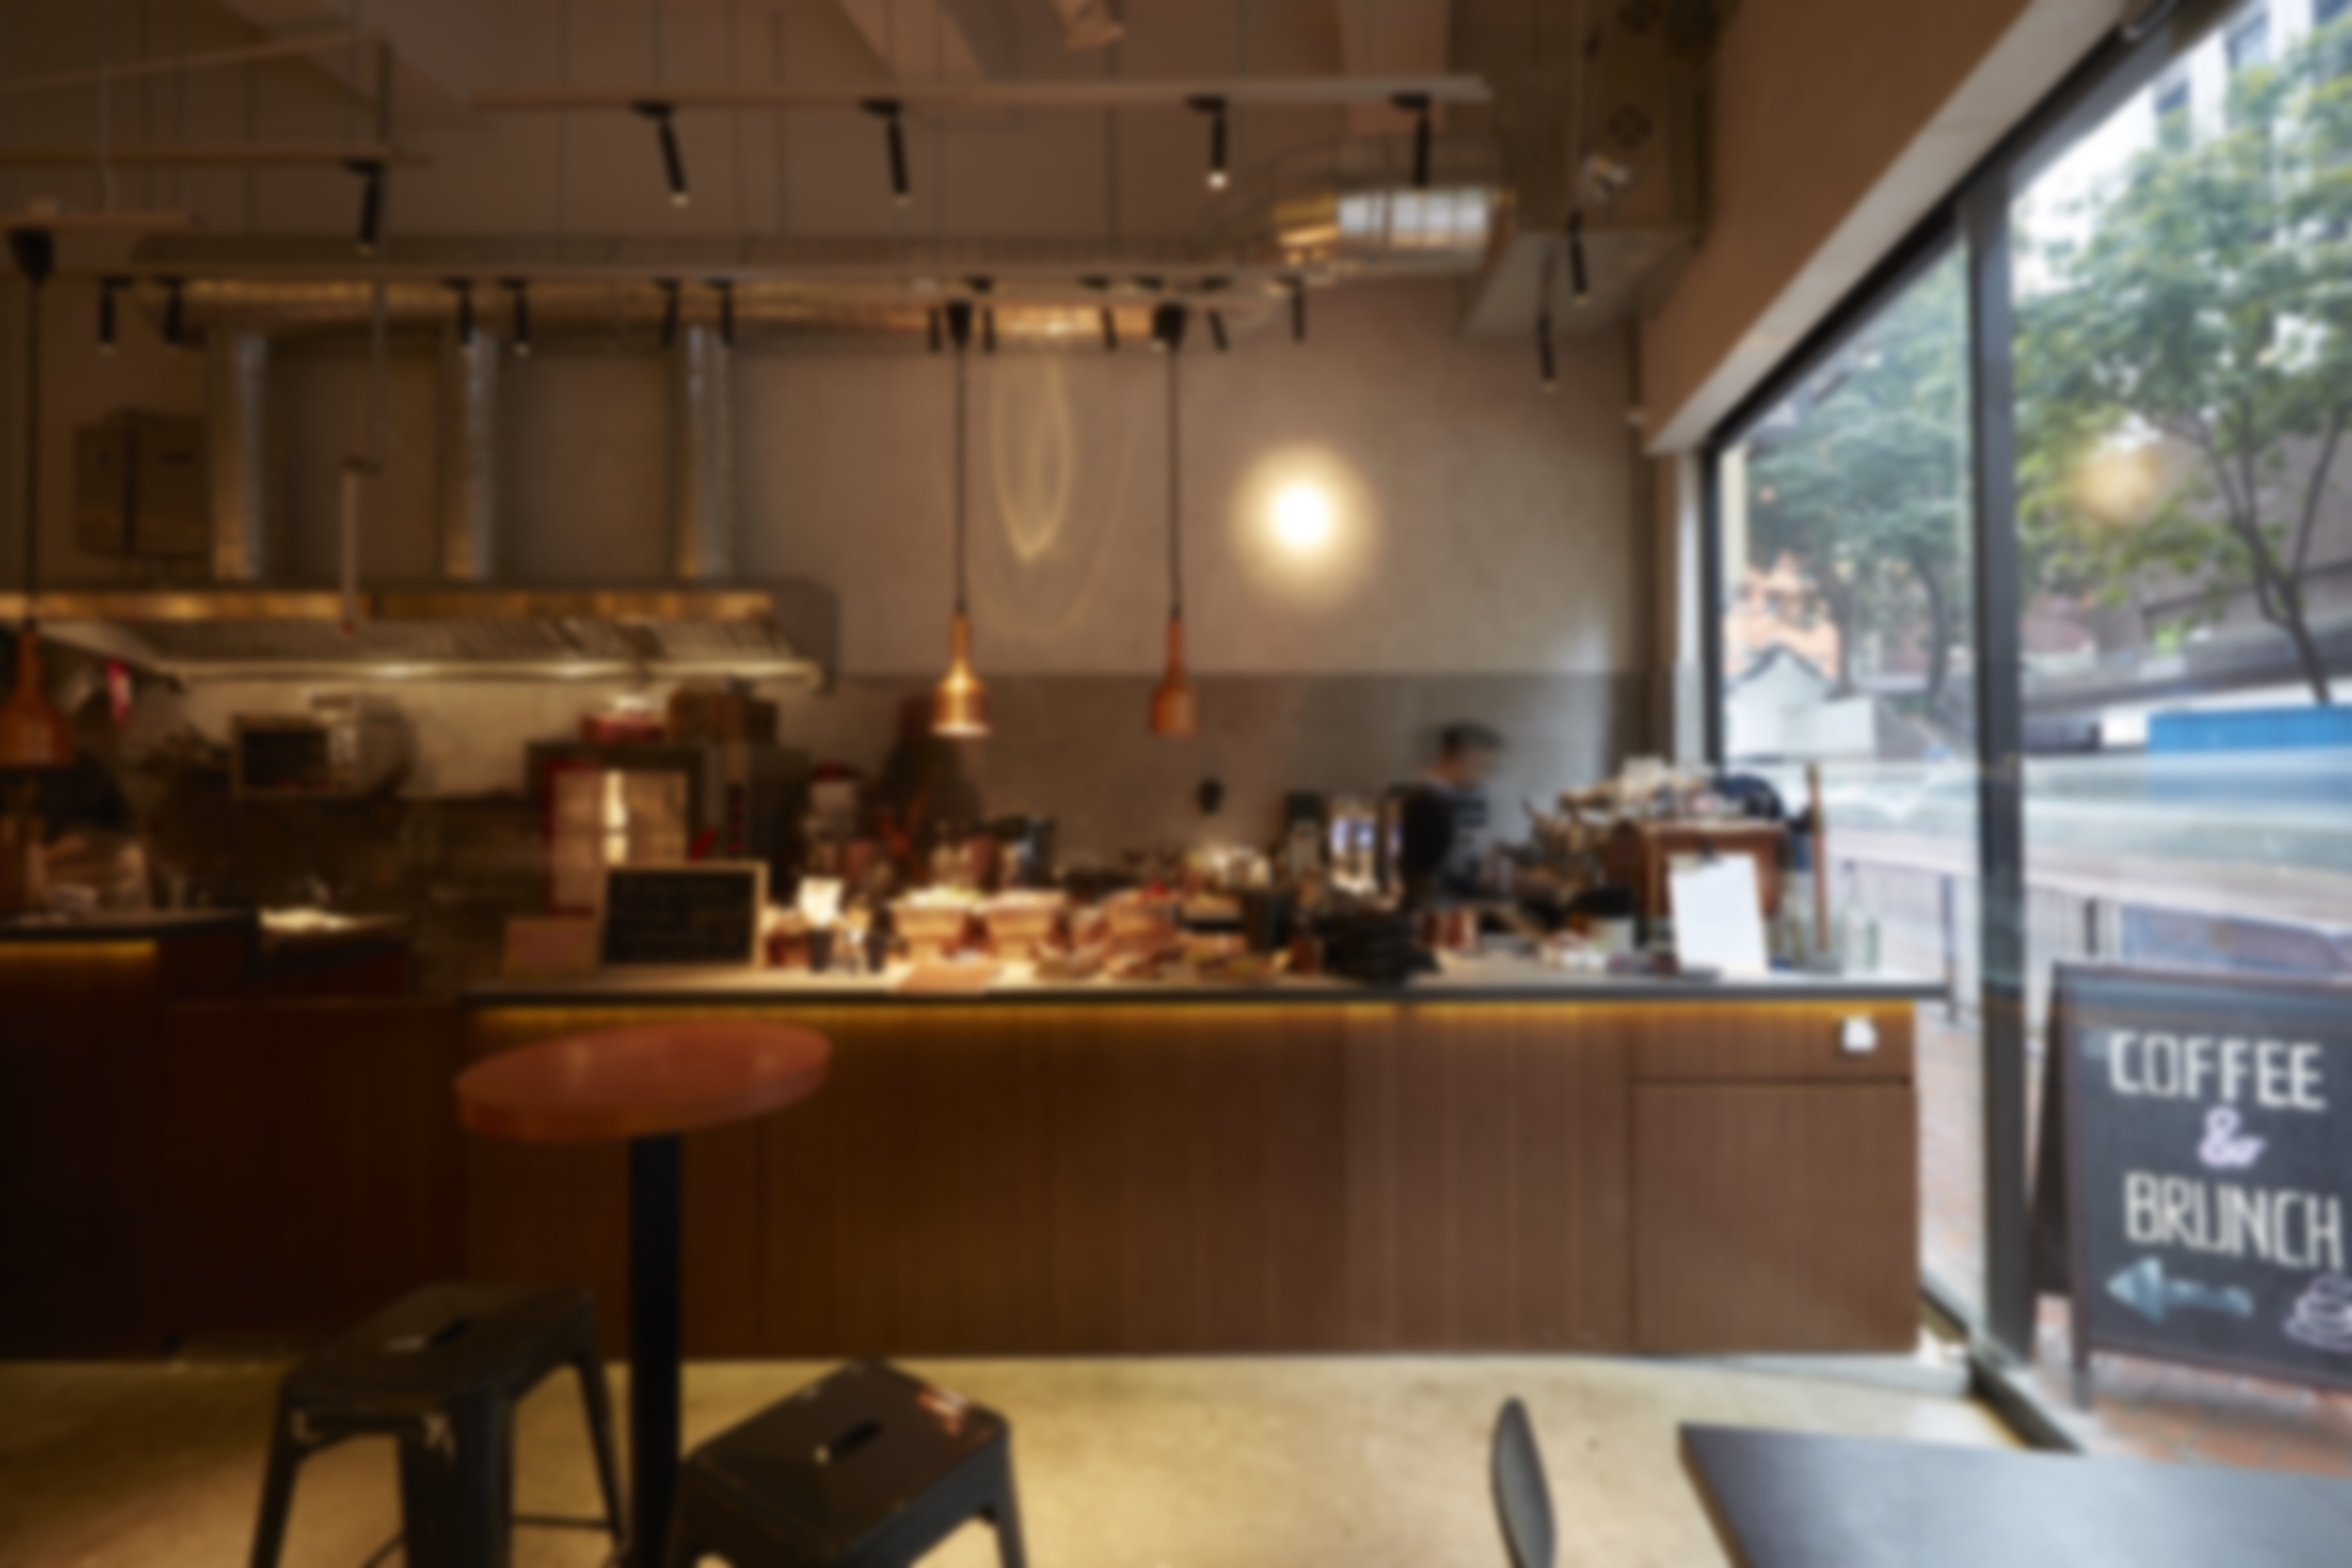 DINING CAFE - 222 QUEEN'S ROAD EAST, WAN CHAI